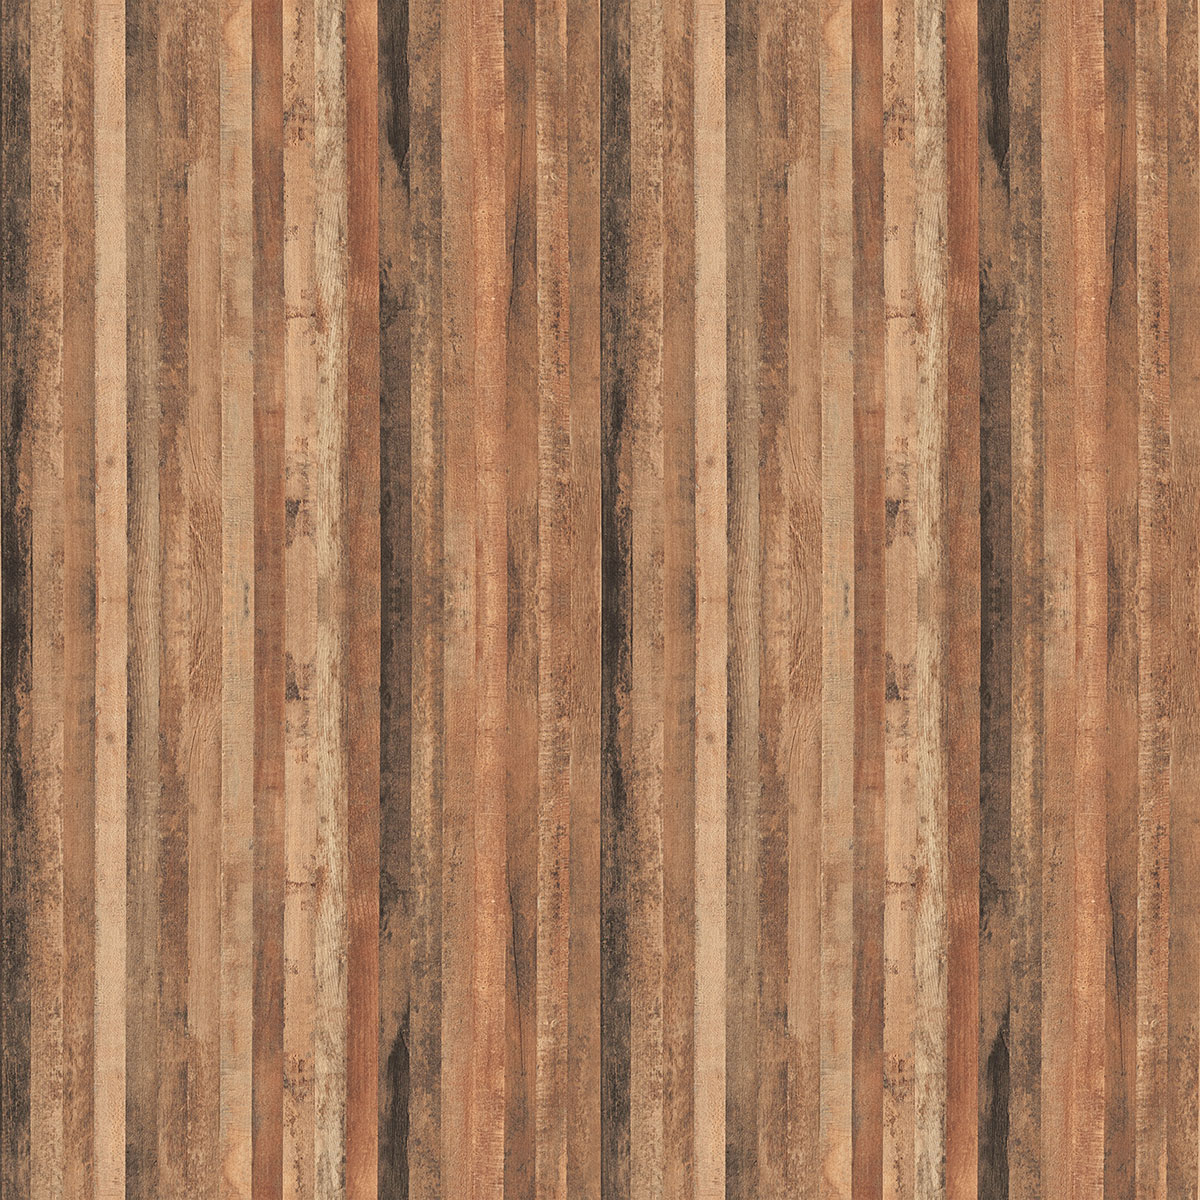 FORMICA TIMBERWOOKS 6318 (Vertical o  n Partition W  alls and Eating C  ounter S  upports by window...horizontal across Smoothy Service Station Face.